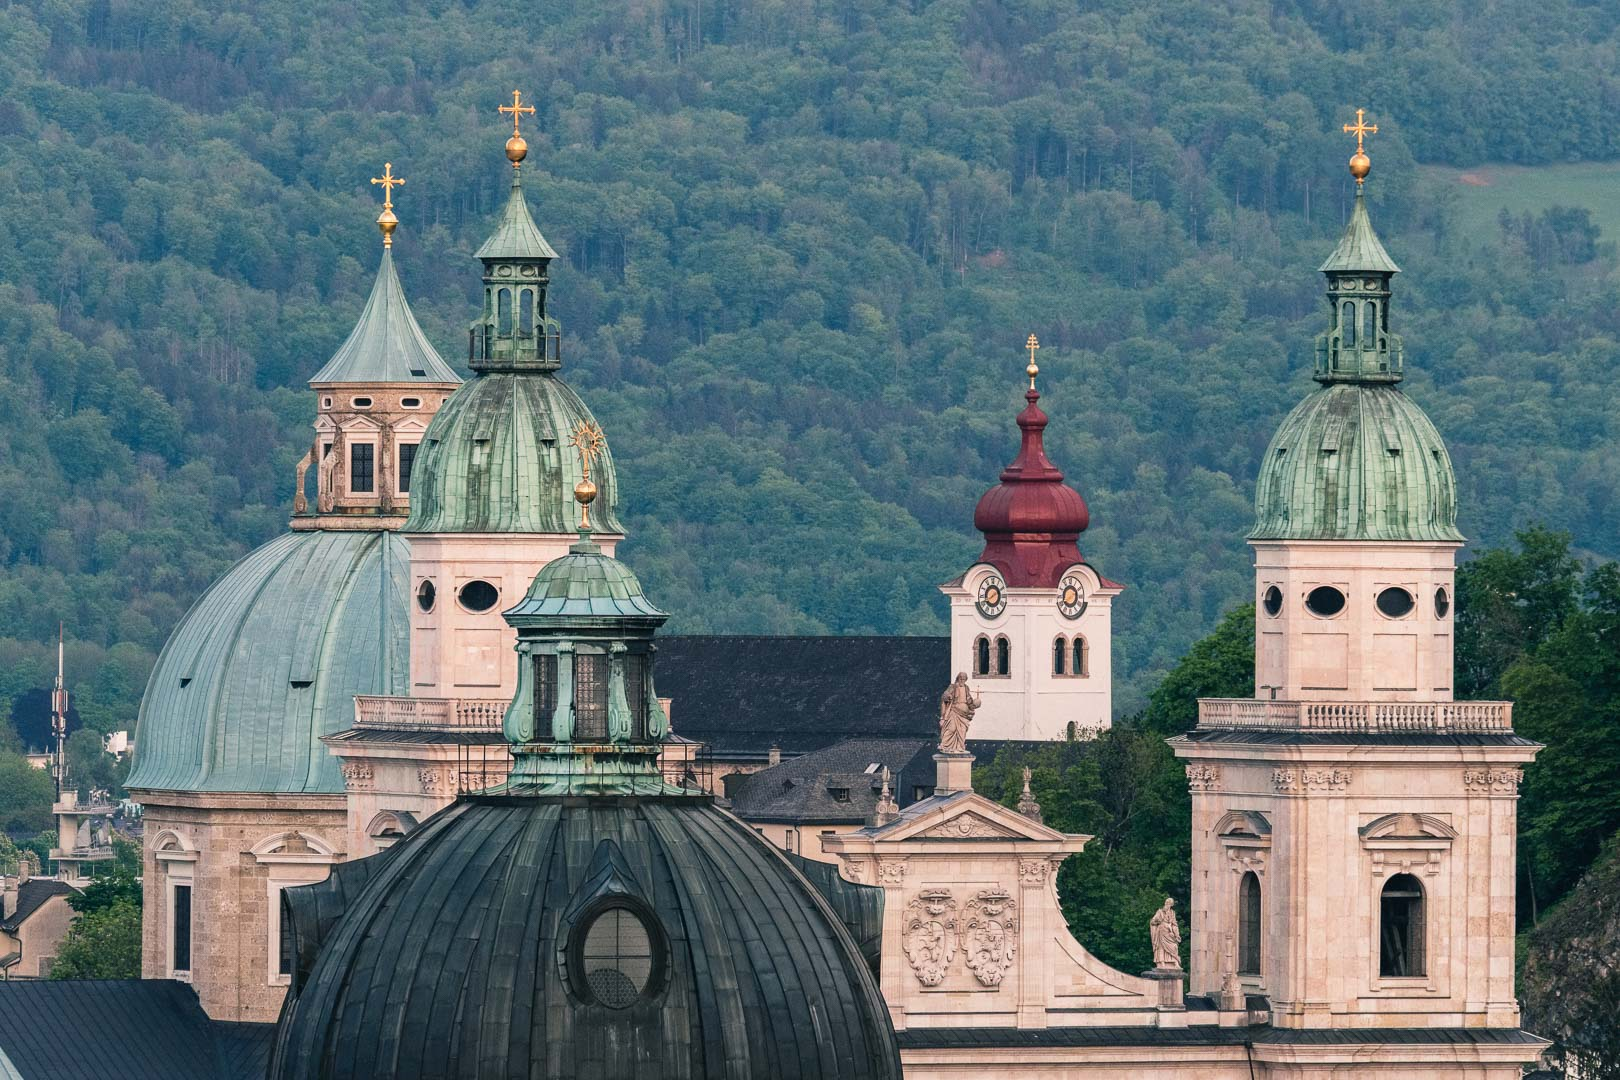 Church towers in Salzburg